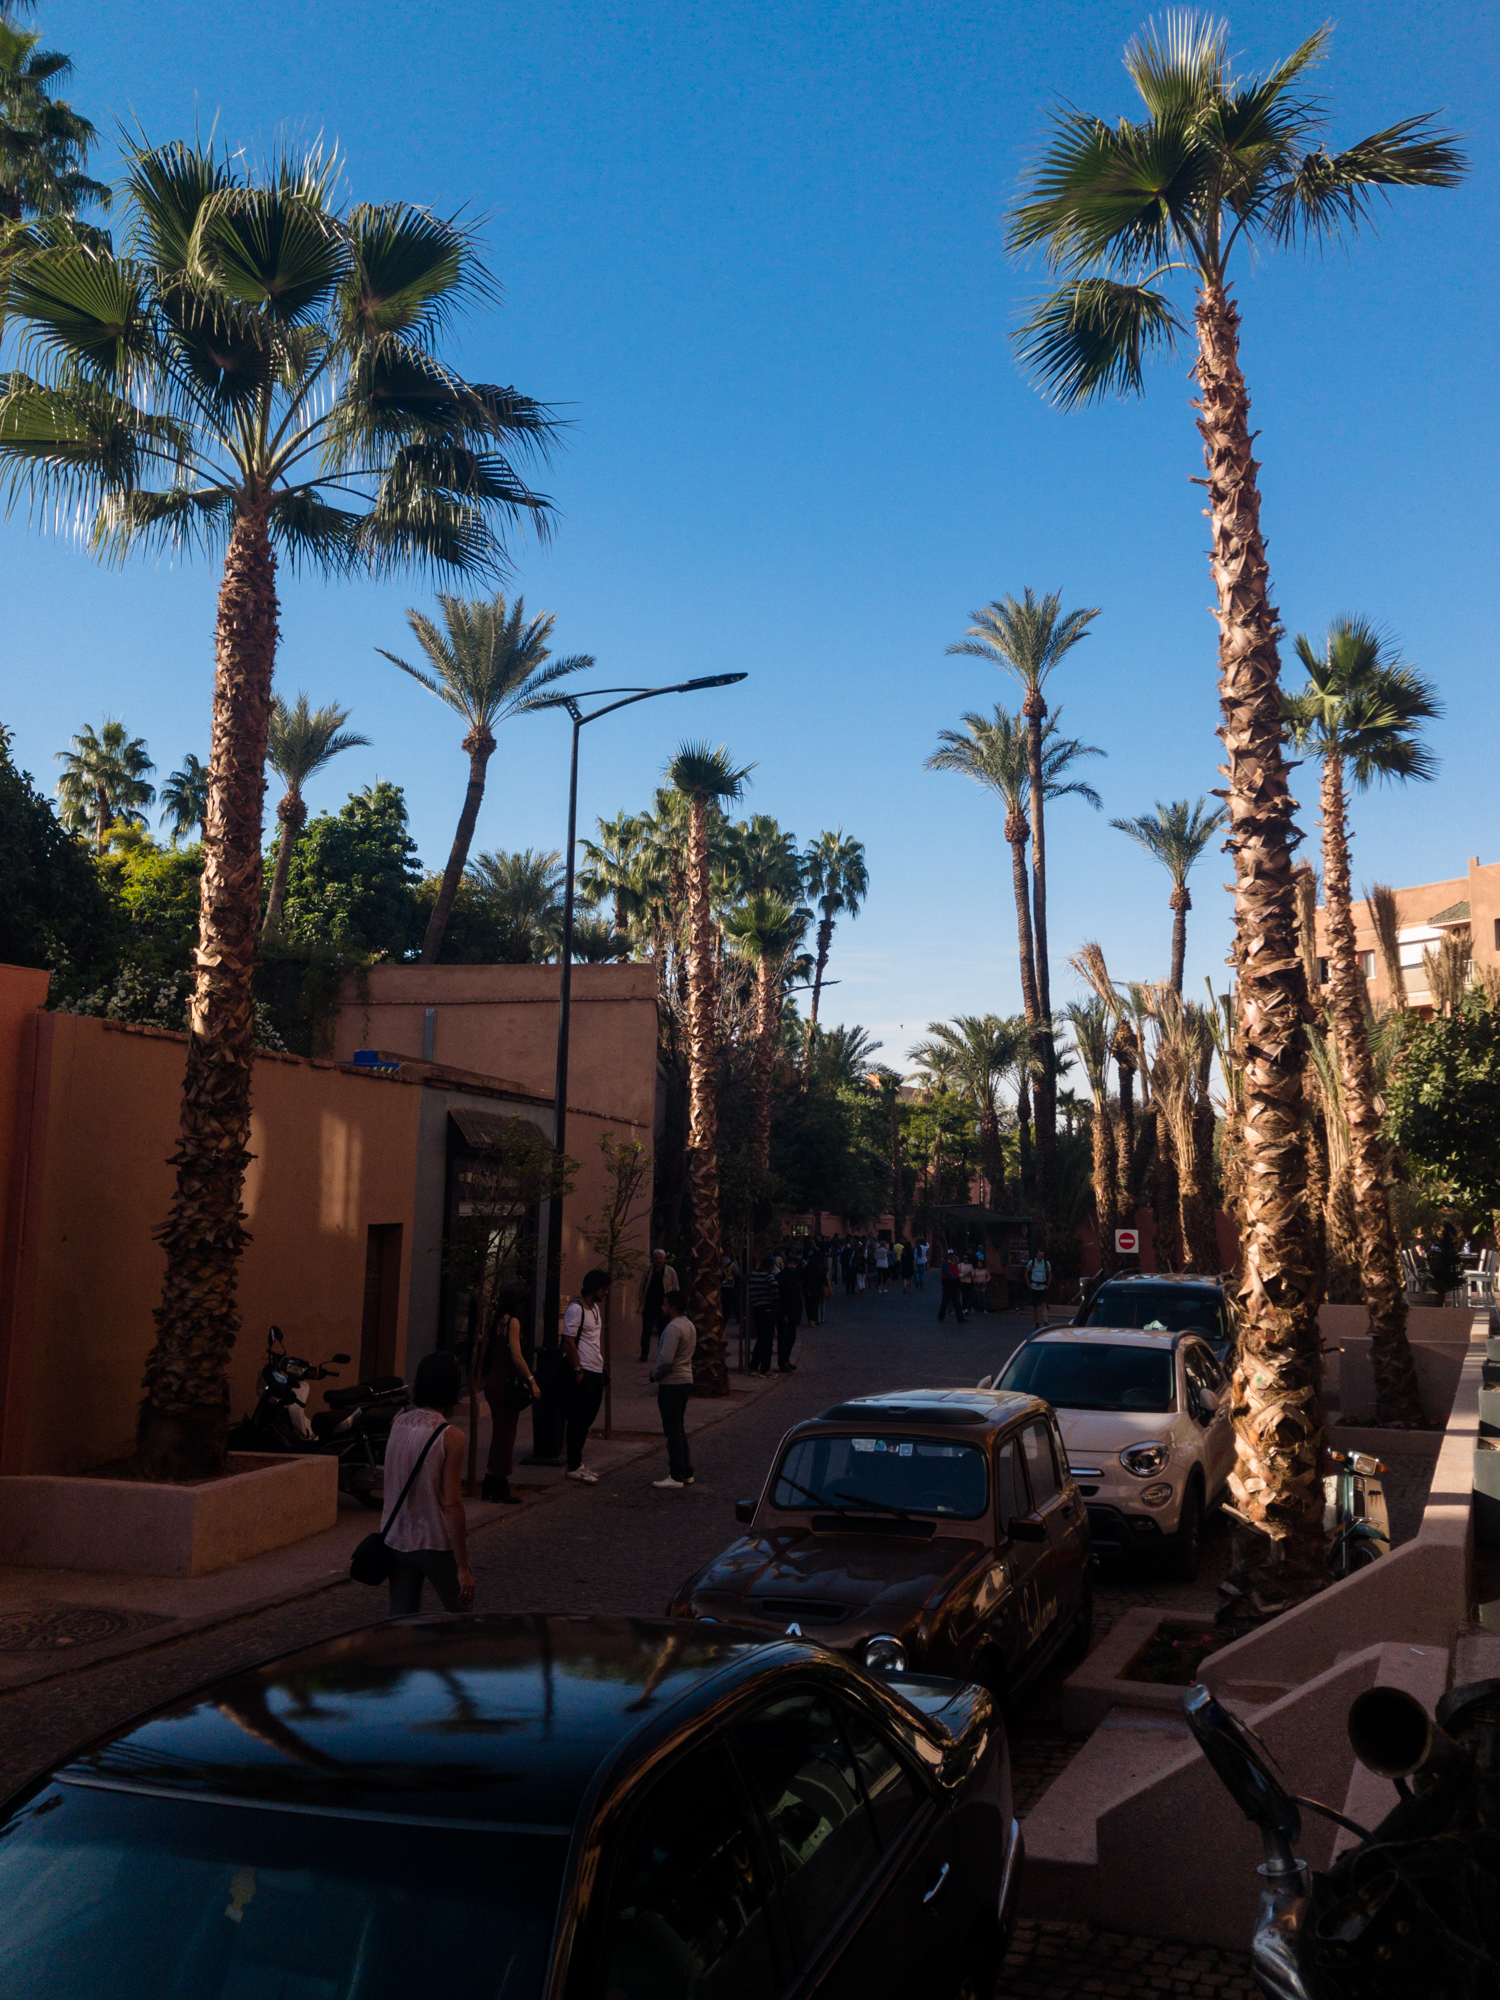 Marrakech_iPhone8+_Photos - Blog_Photos-34.jpg